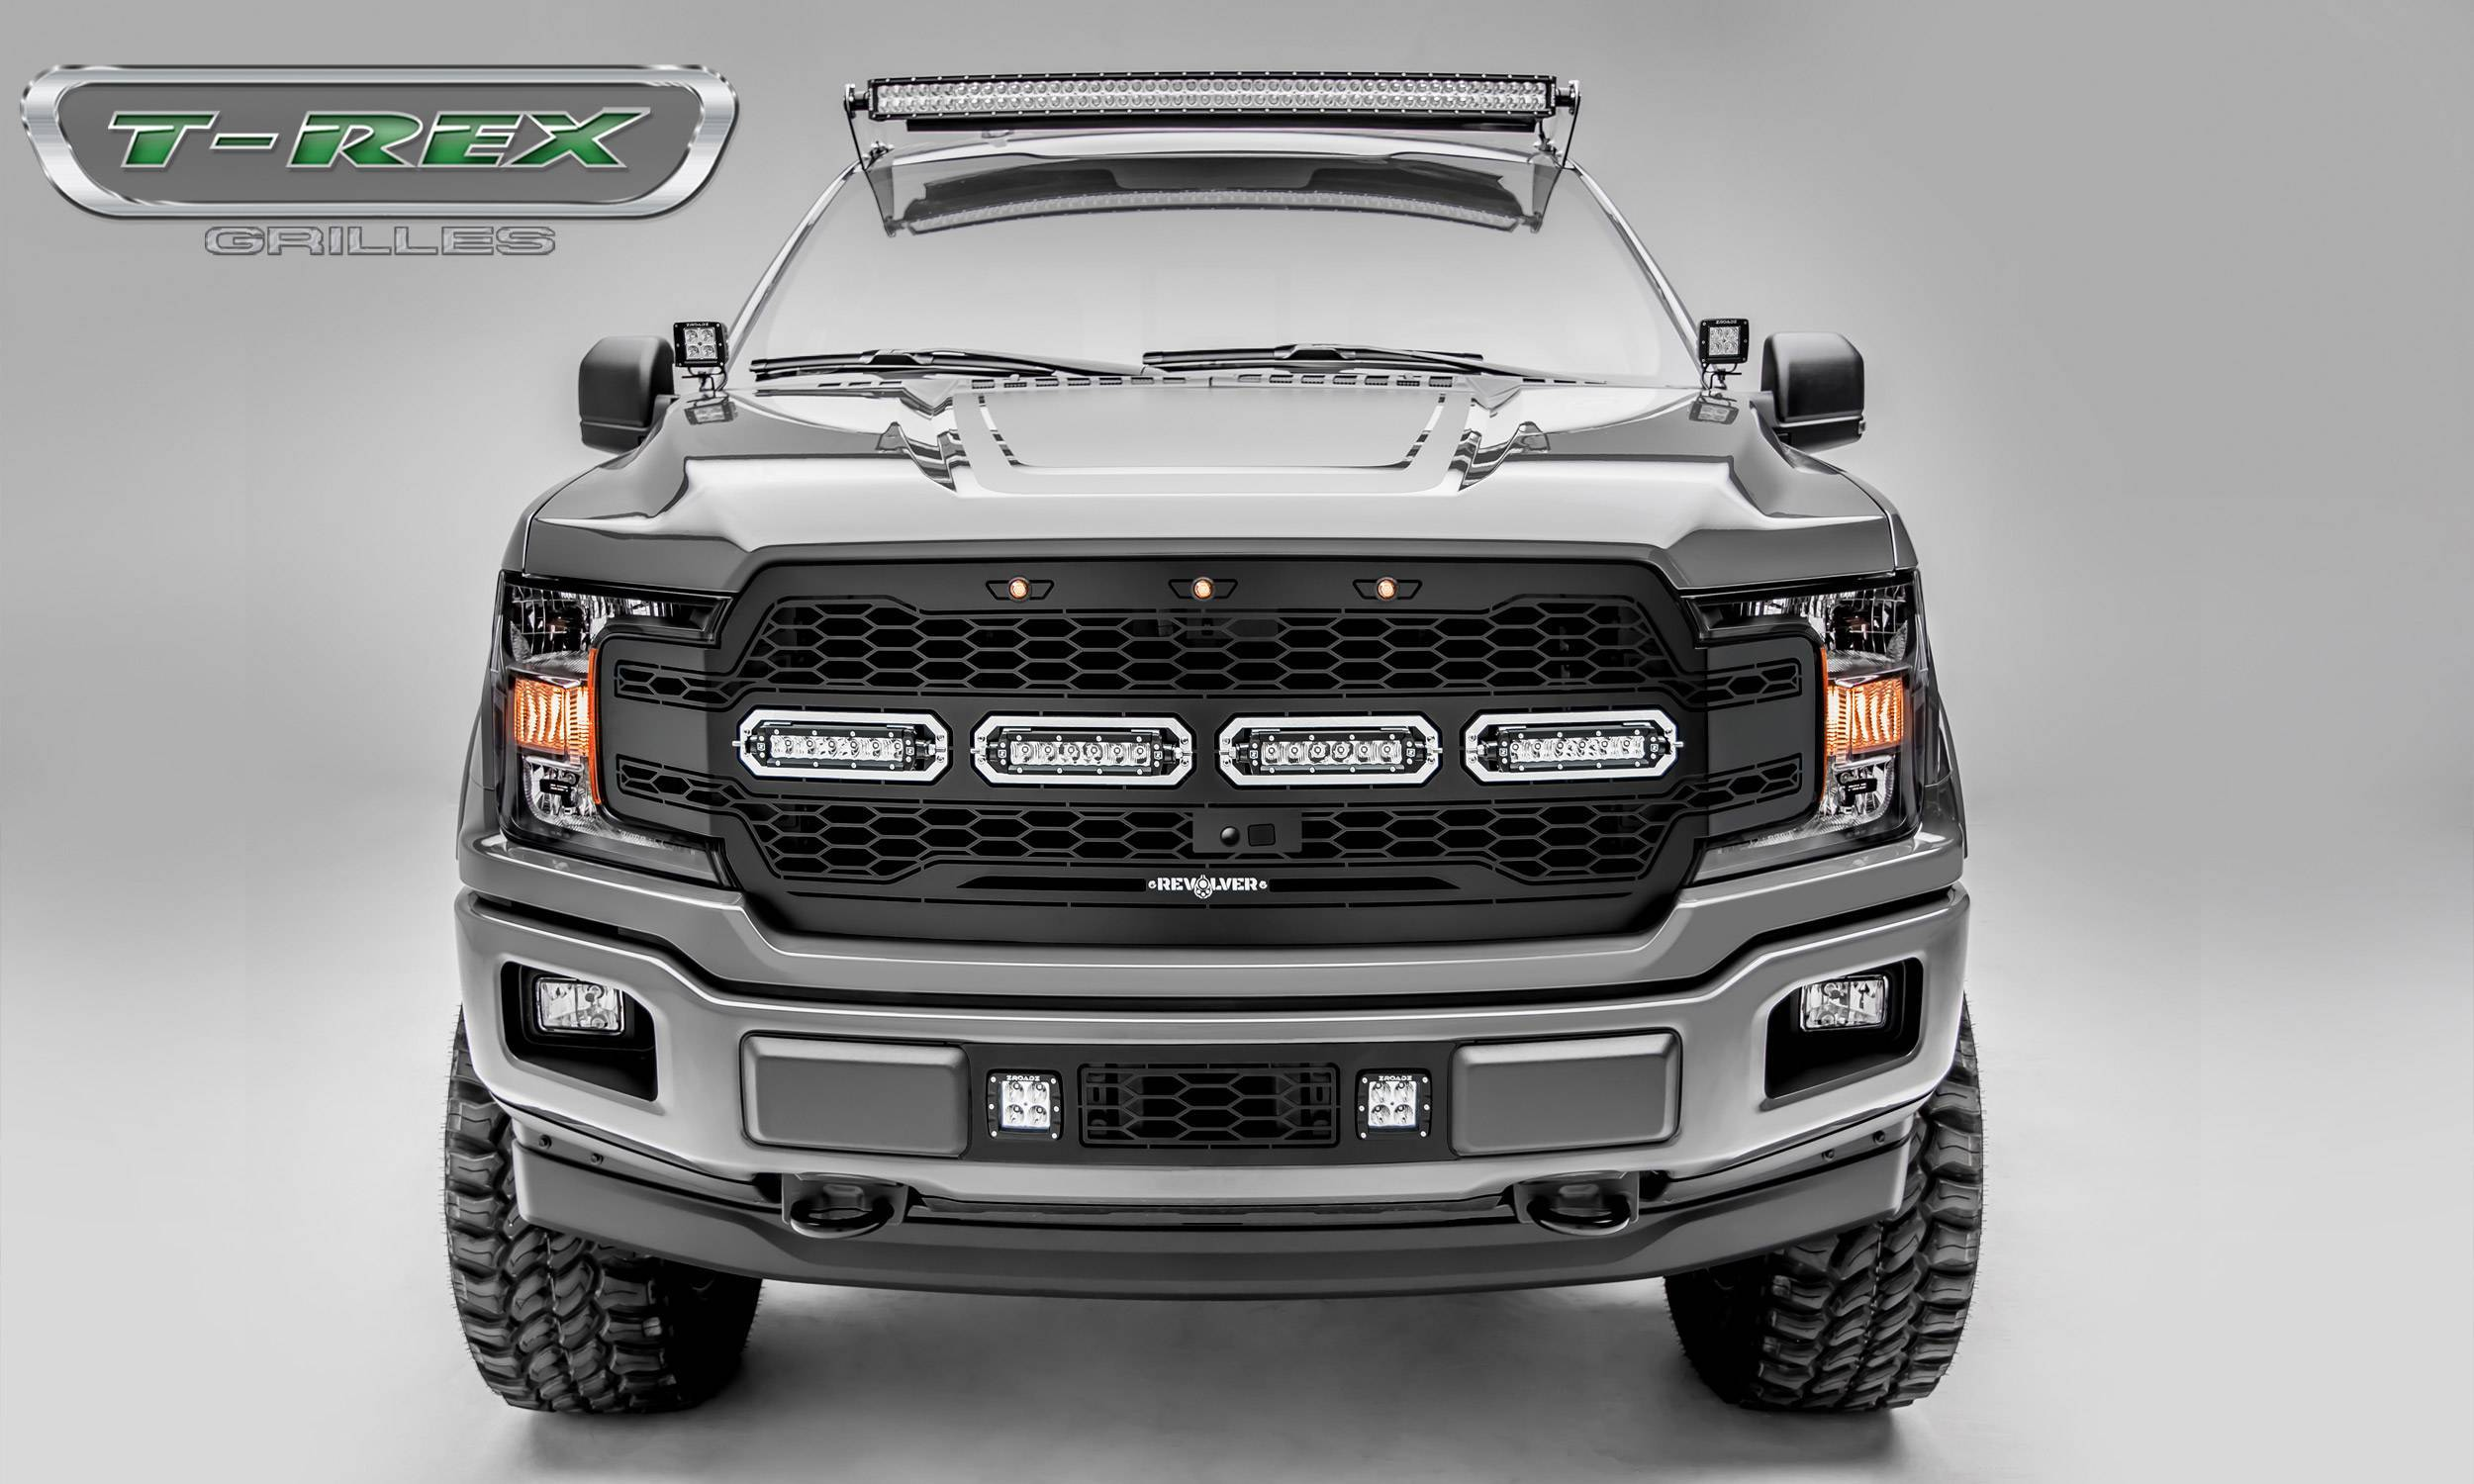 T-REX Grilles - 2018-2020 F-150 Revolver Grille, Black, 1 Pc, Replacement with (4) 6 Inch LEDs, Fits Vehicles with Camera - PN #6515791